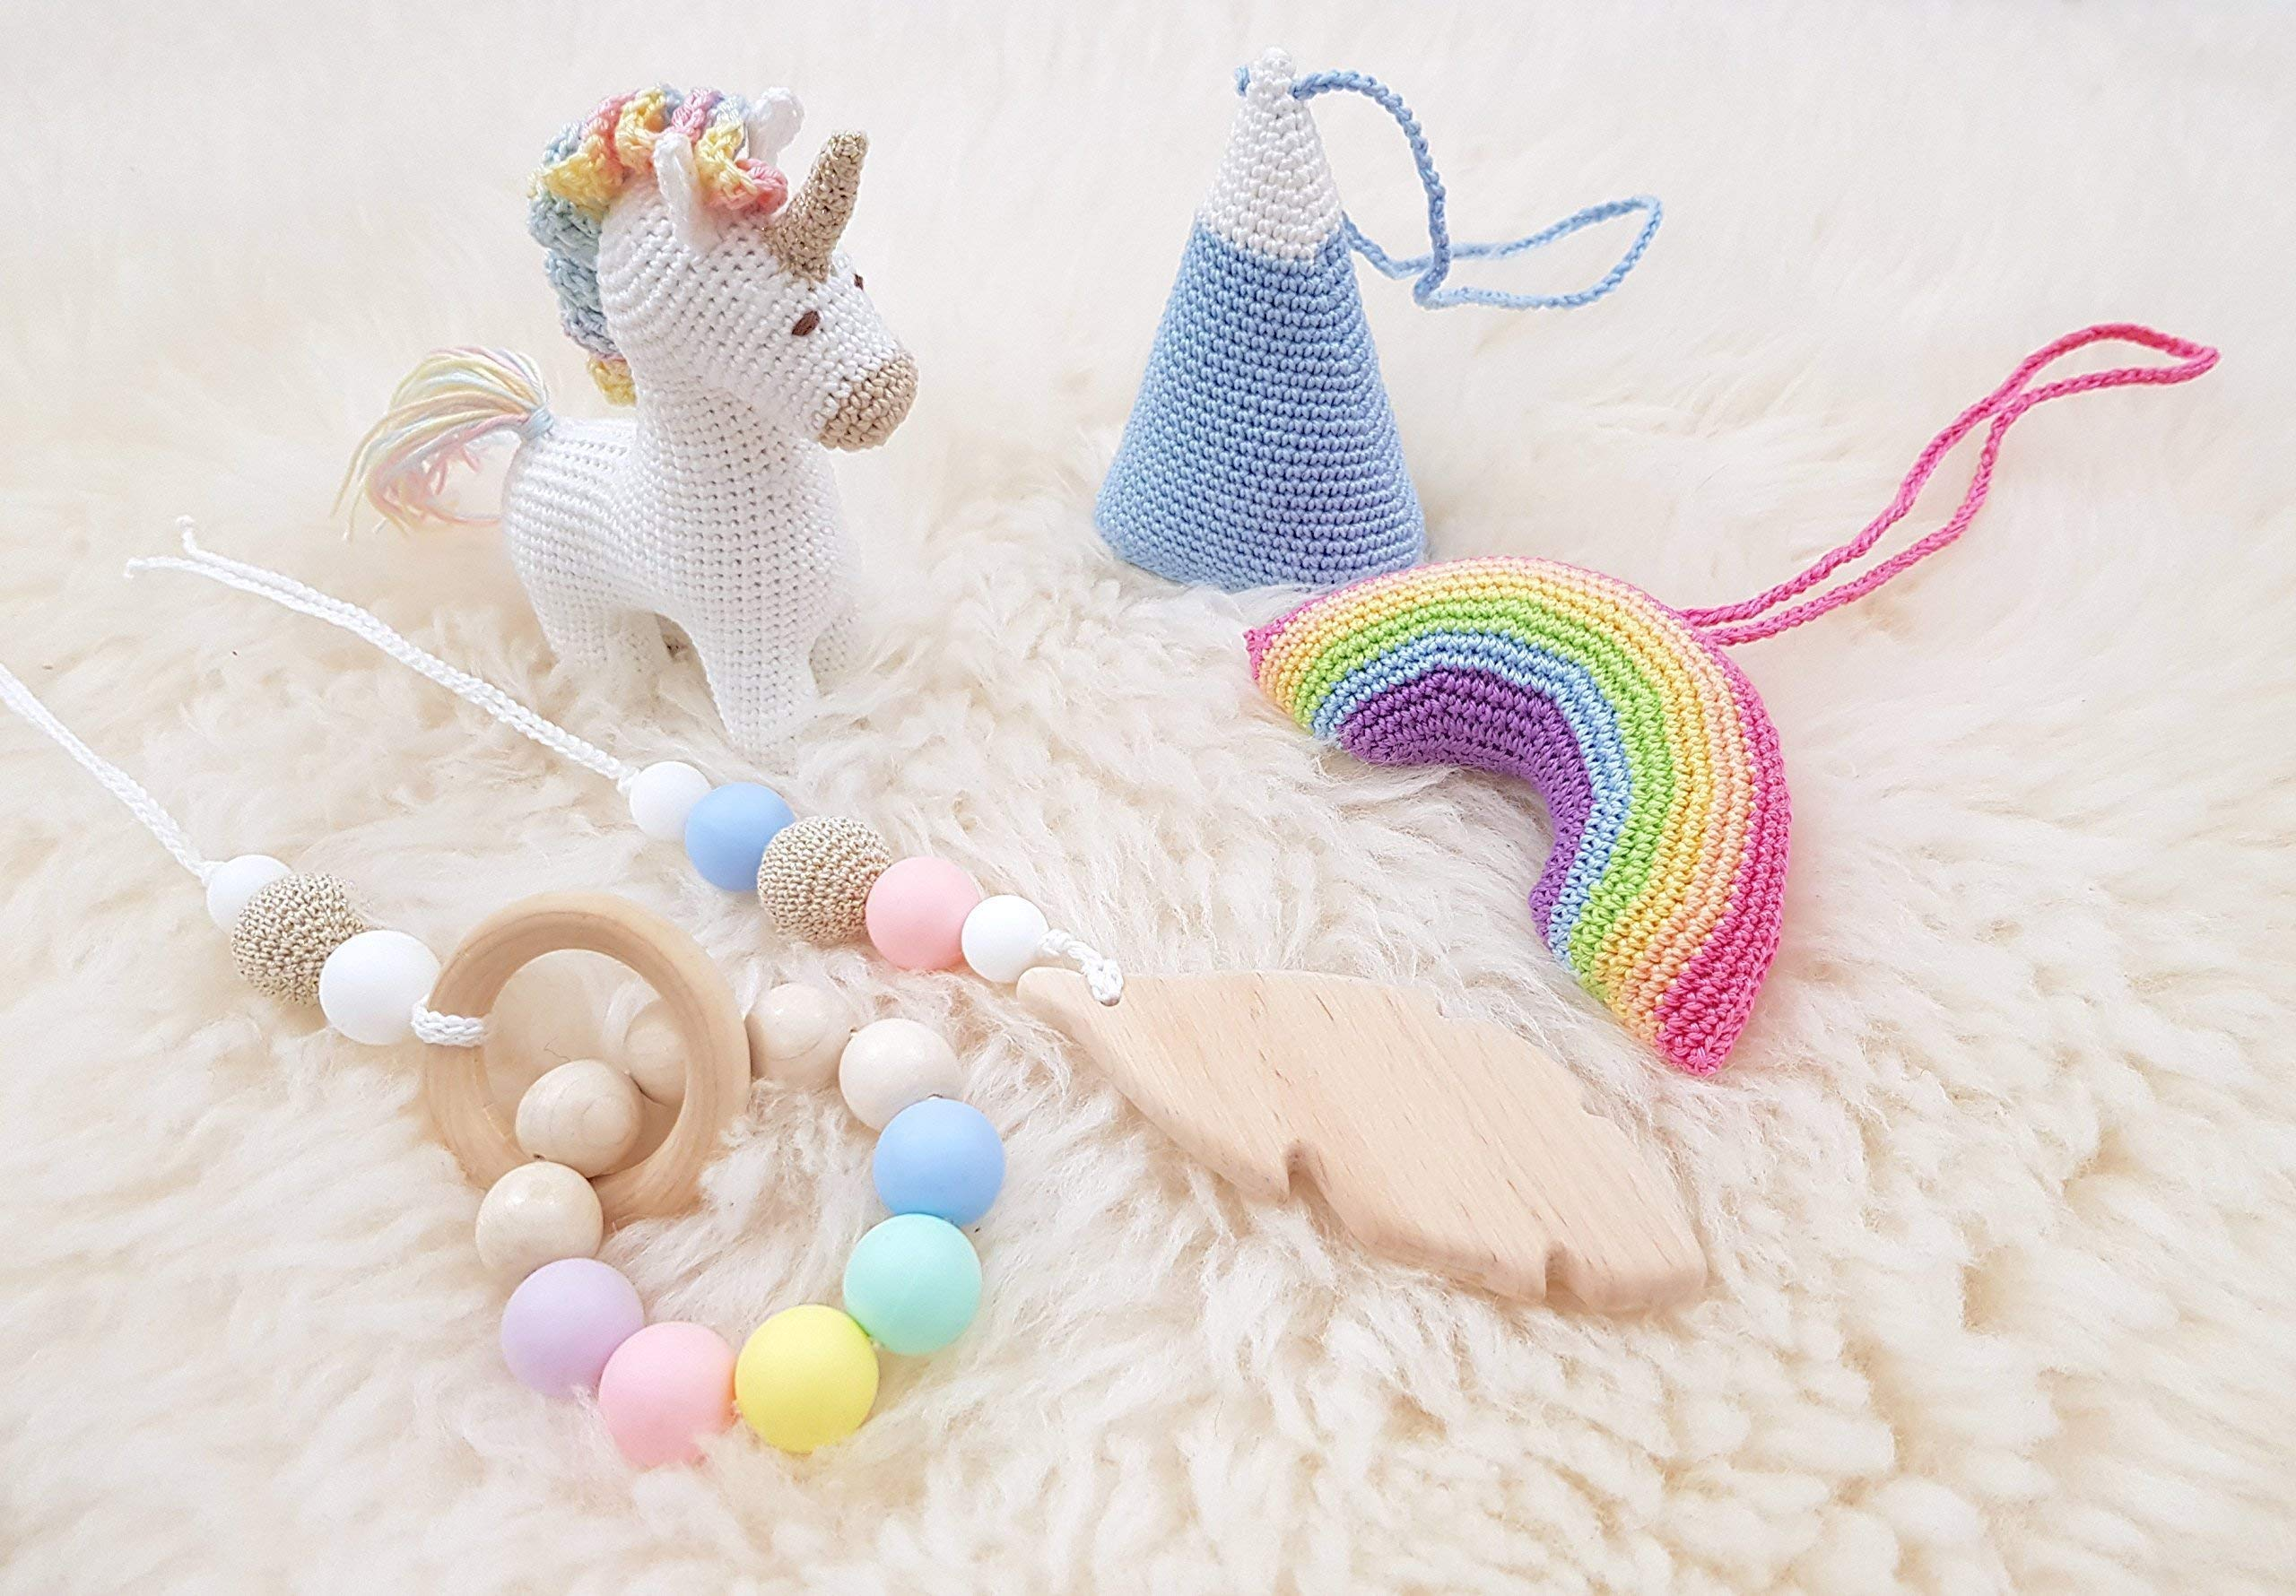 Rainbow Unicorn Baby Play Gym with 5 Mobiles: Unicorn, Rainbow, Mountain, Feather, Beaded Ring. Handmade by… 8